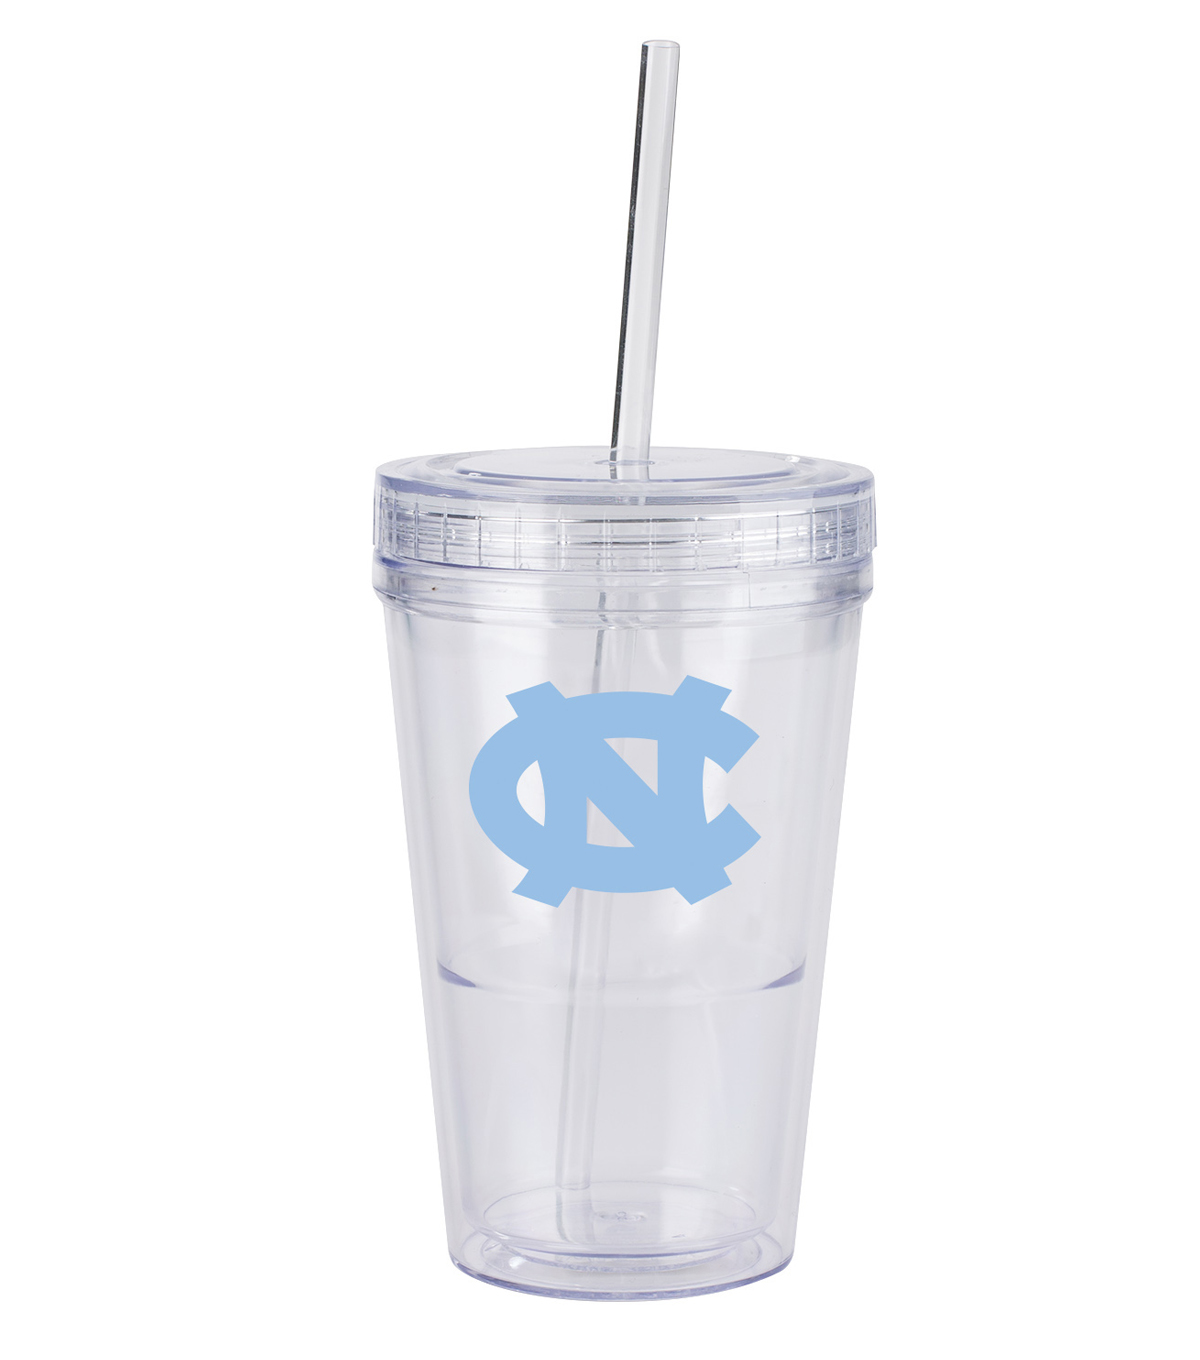 University of North Carolina Tarheels 16oz Cup